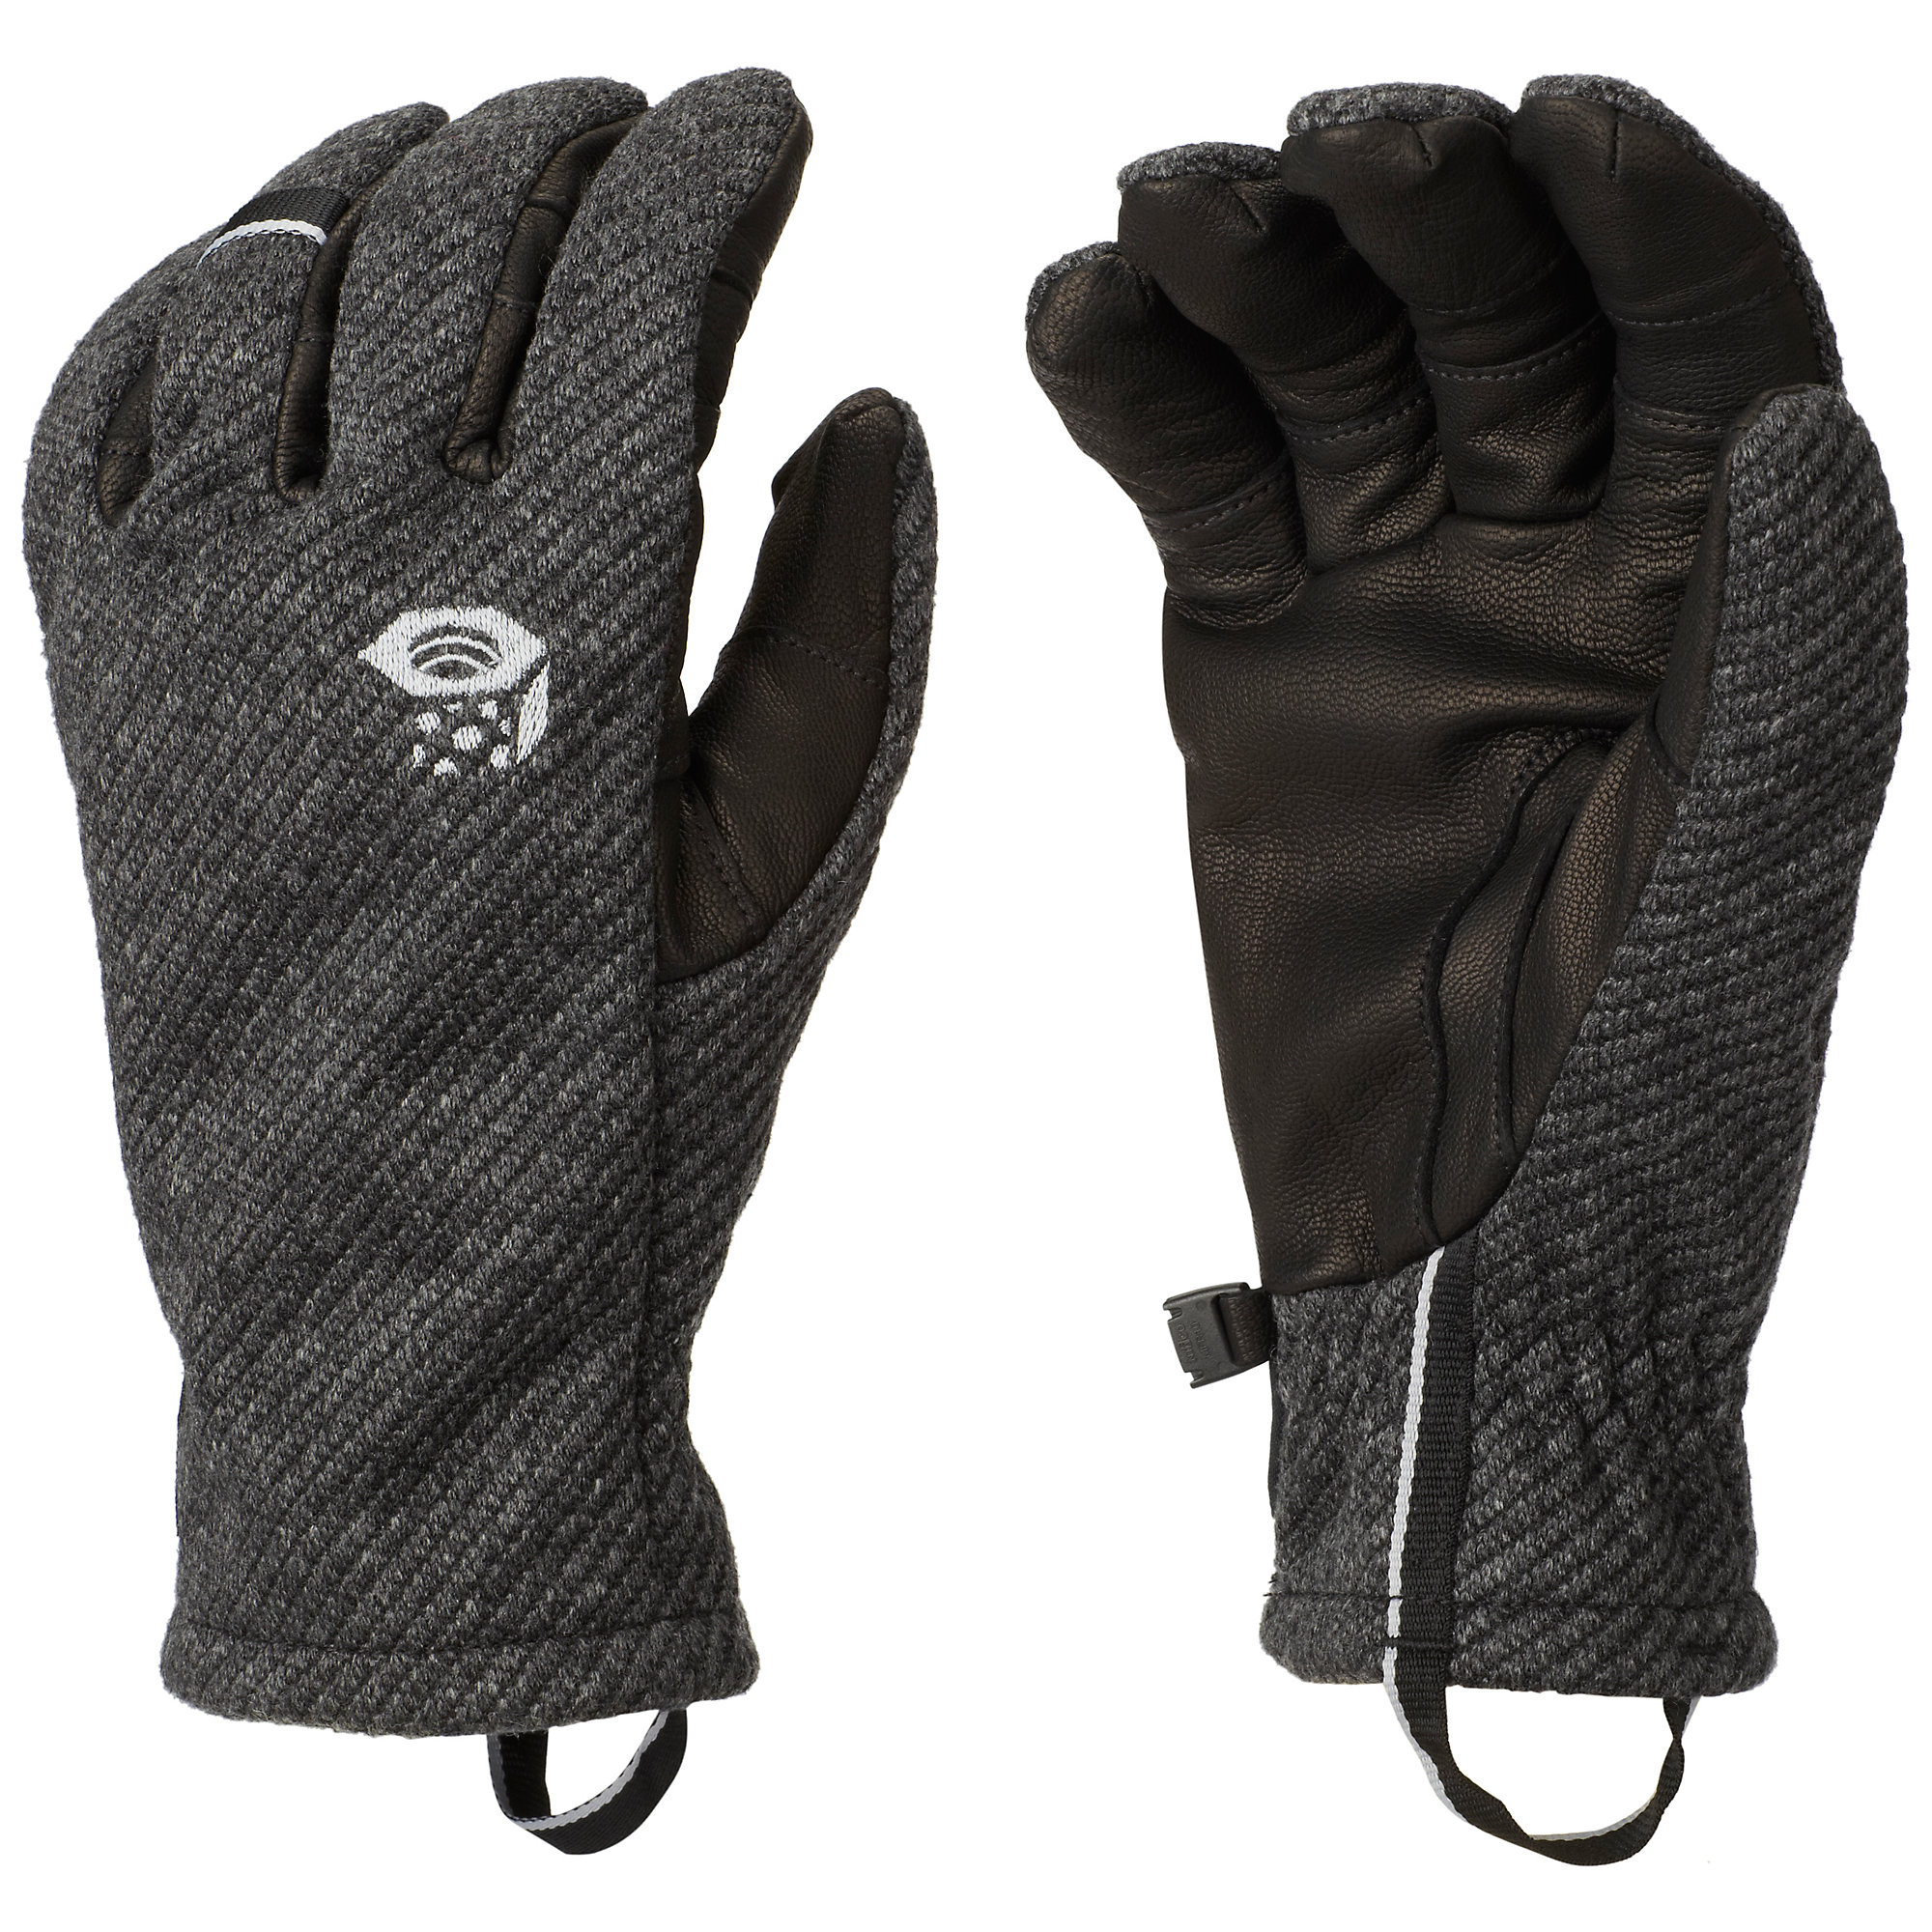 Mountain Hardwear Gravity Glove